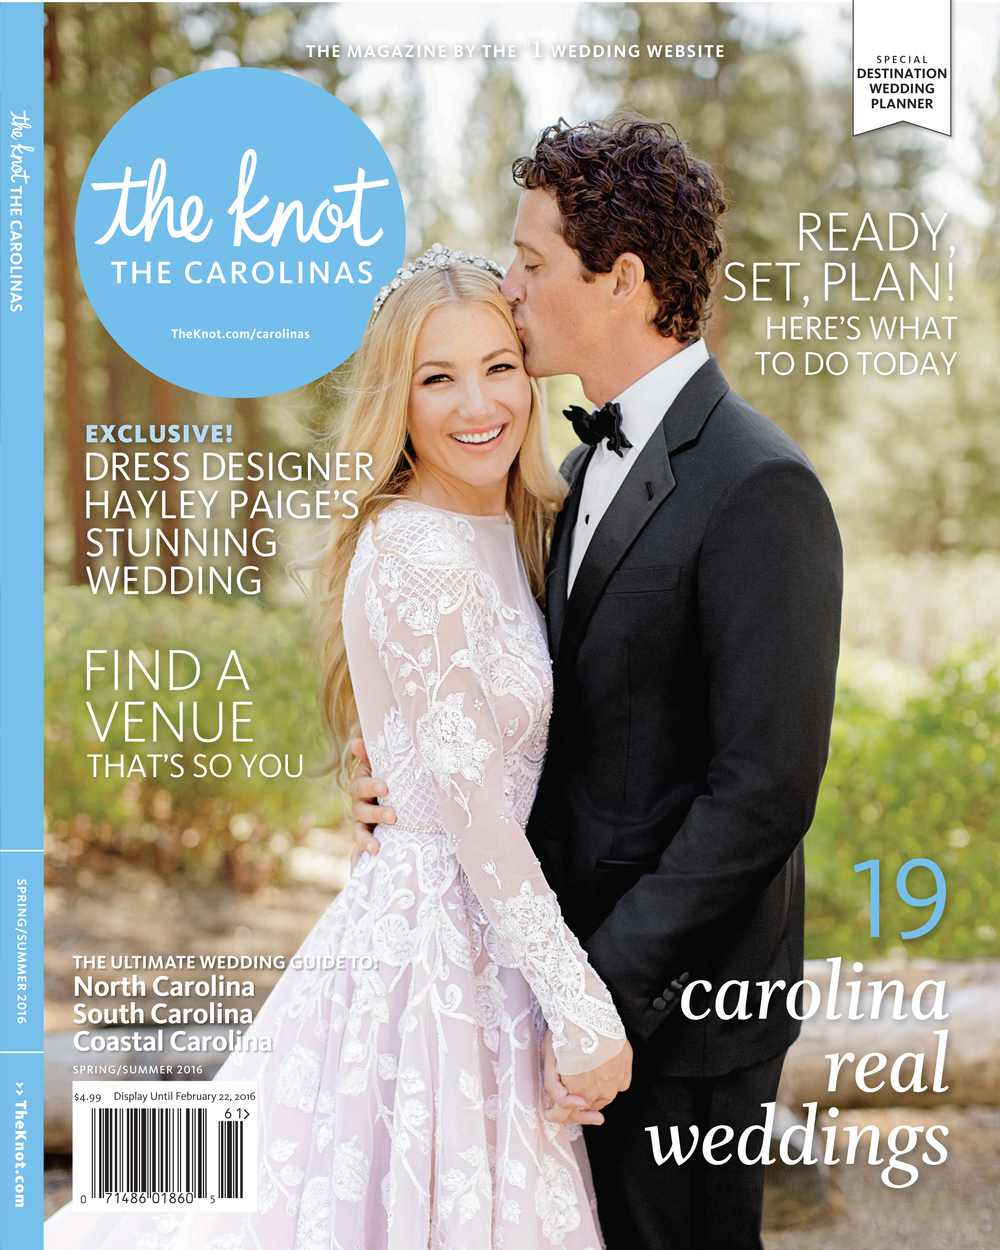 live-wedding-painter-the-knot-carolinas-issue